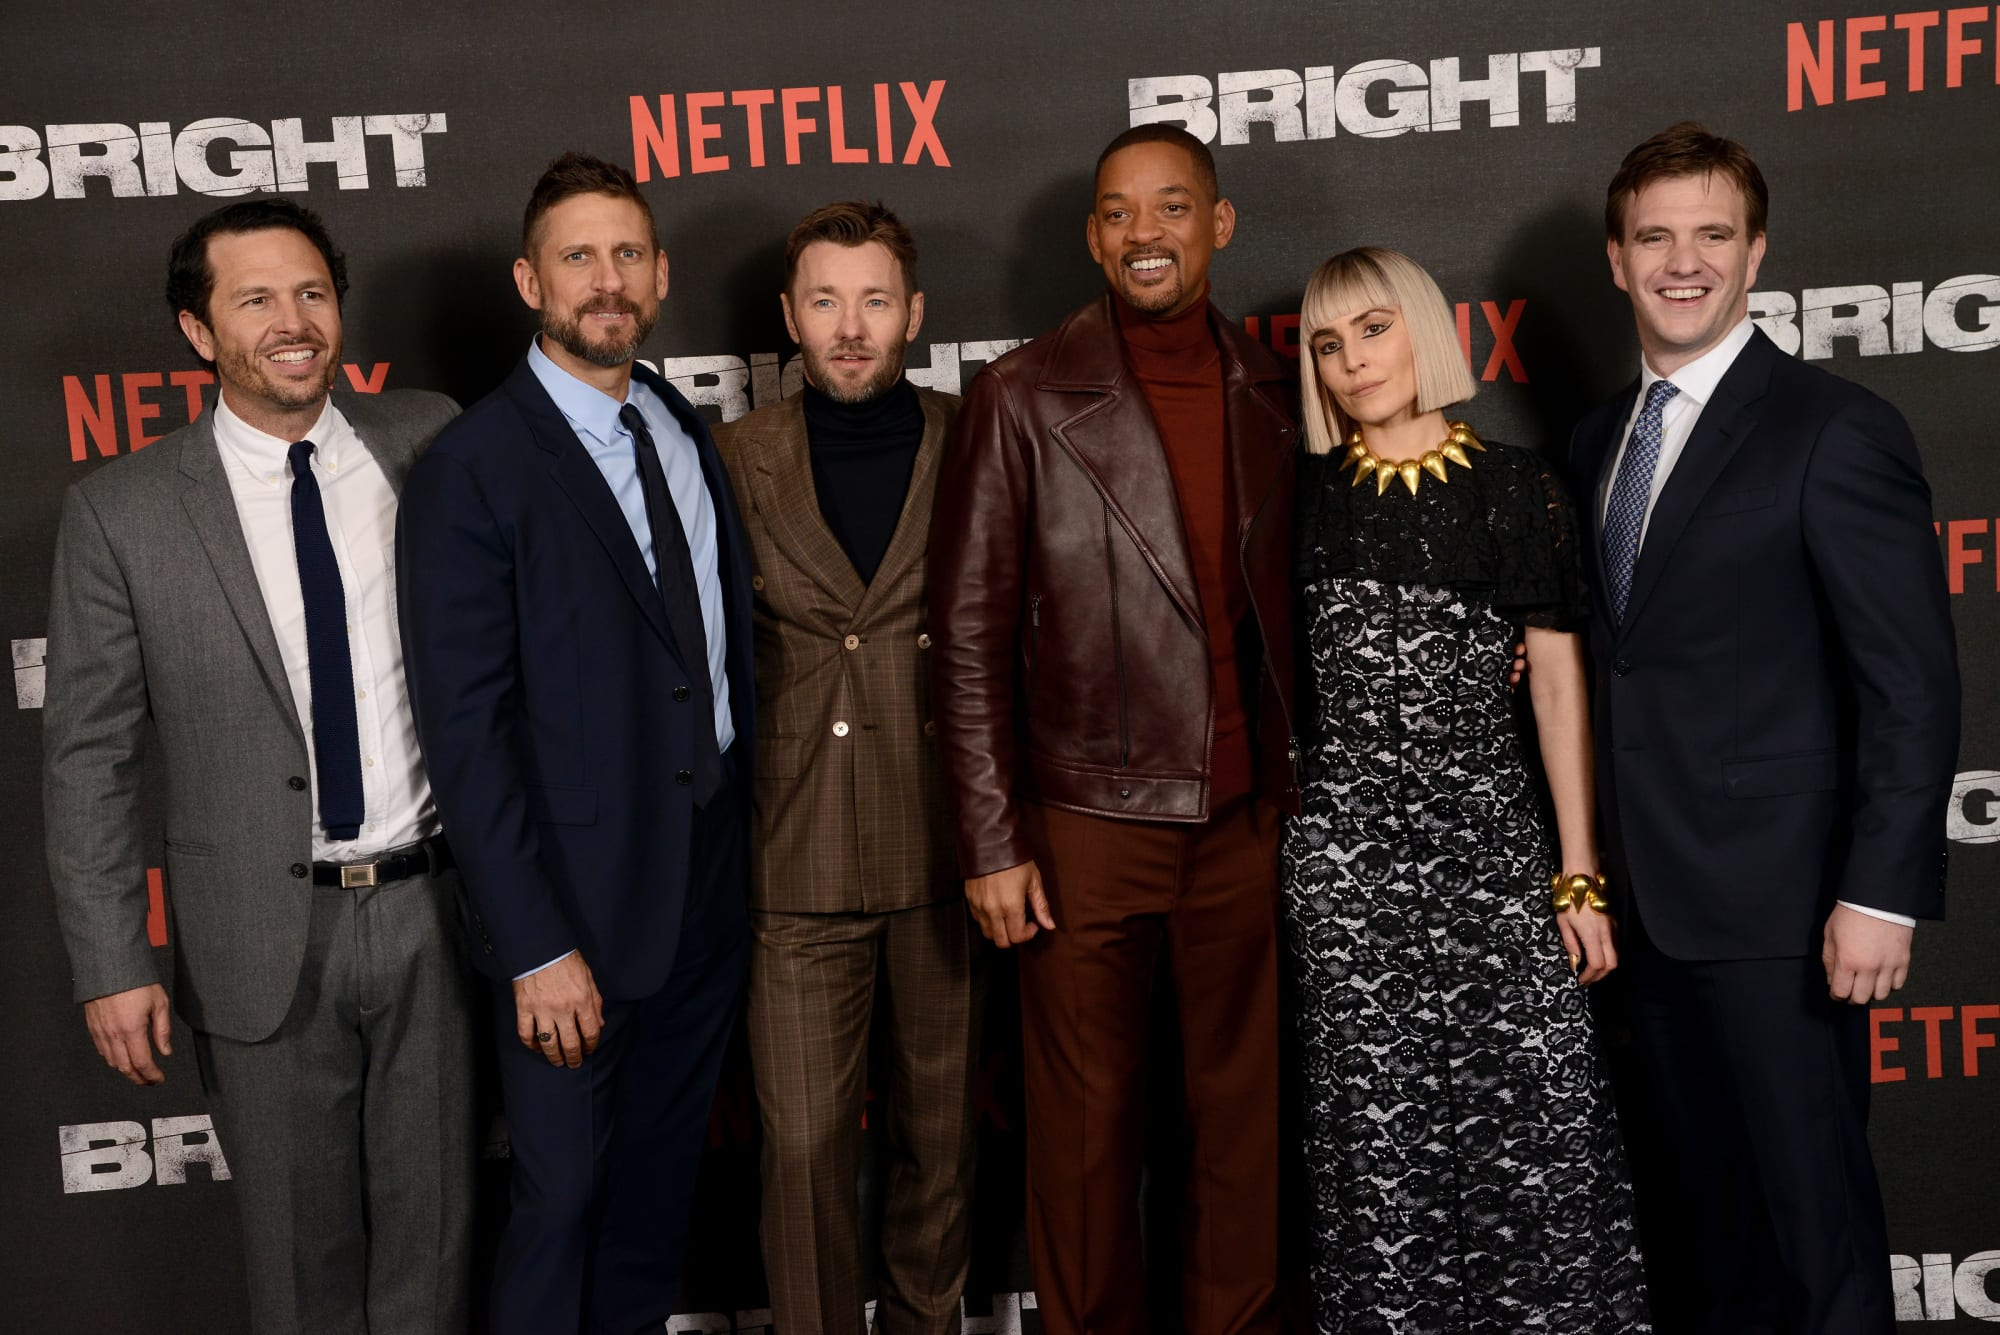 Bright 2 release date, cast, synopsis, trailer, and more